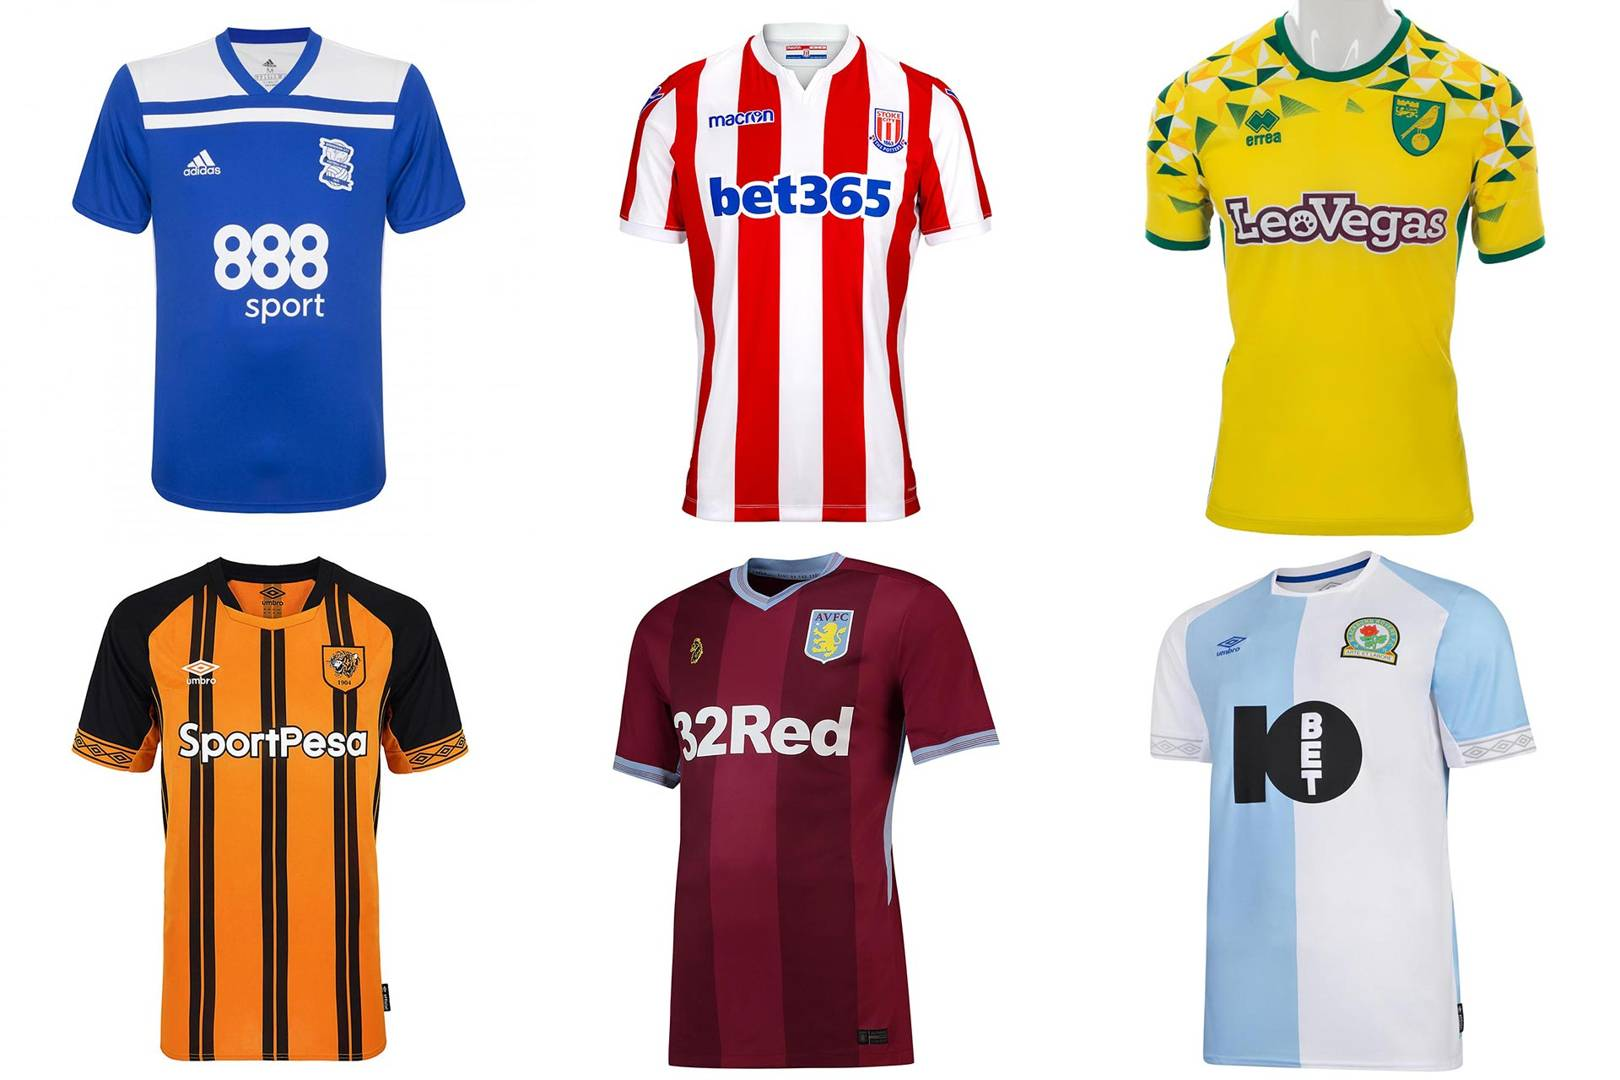 54e72dbcc Championship kits 2018/19 ranked from worst to best | British GQ